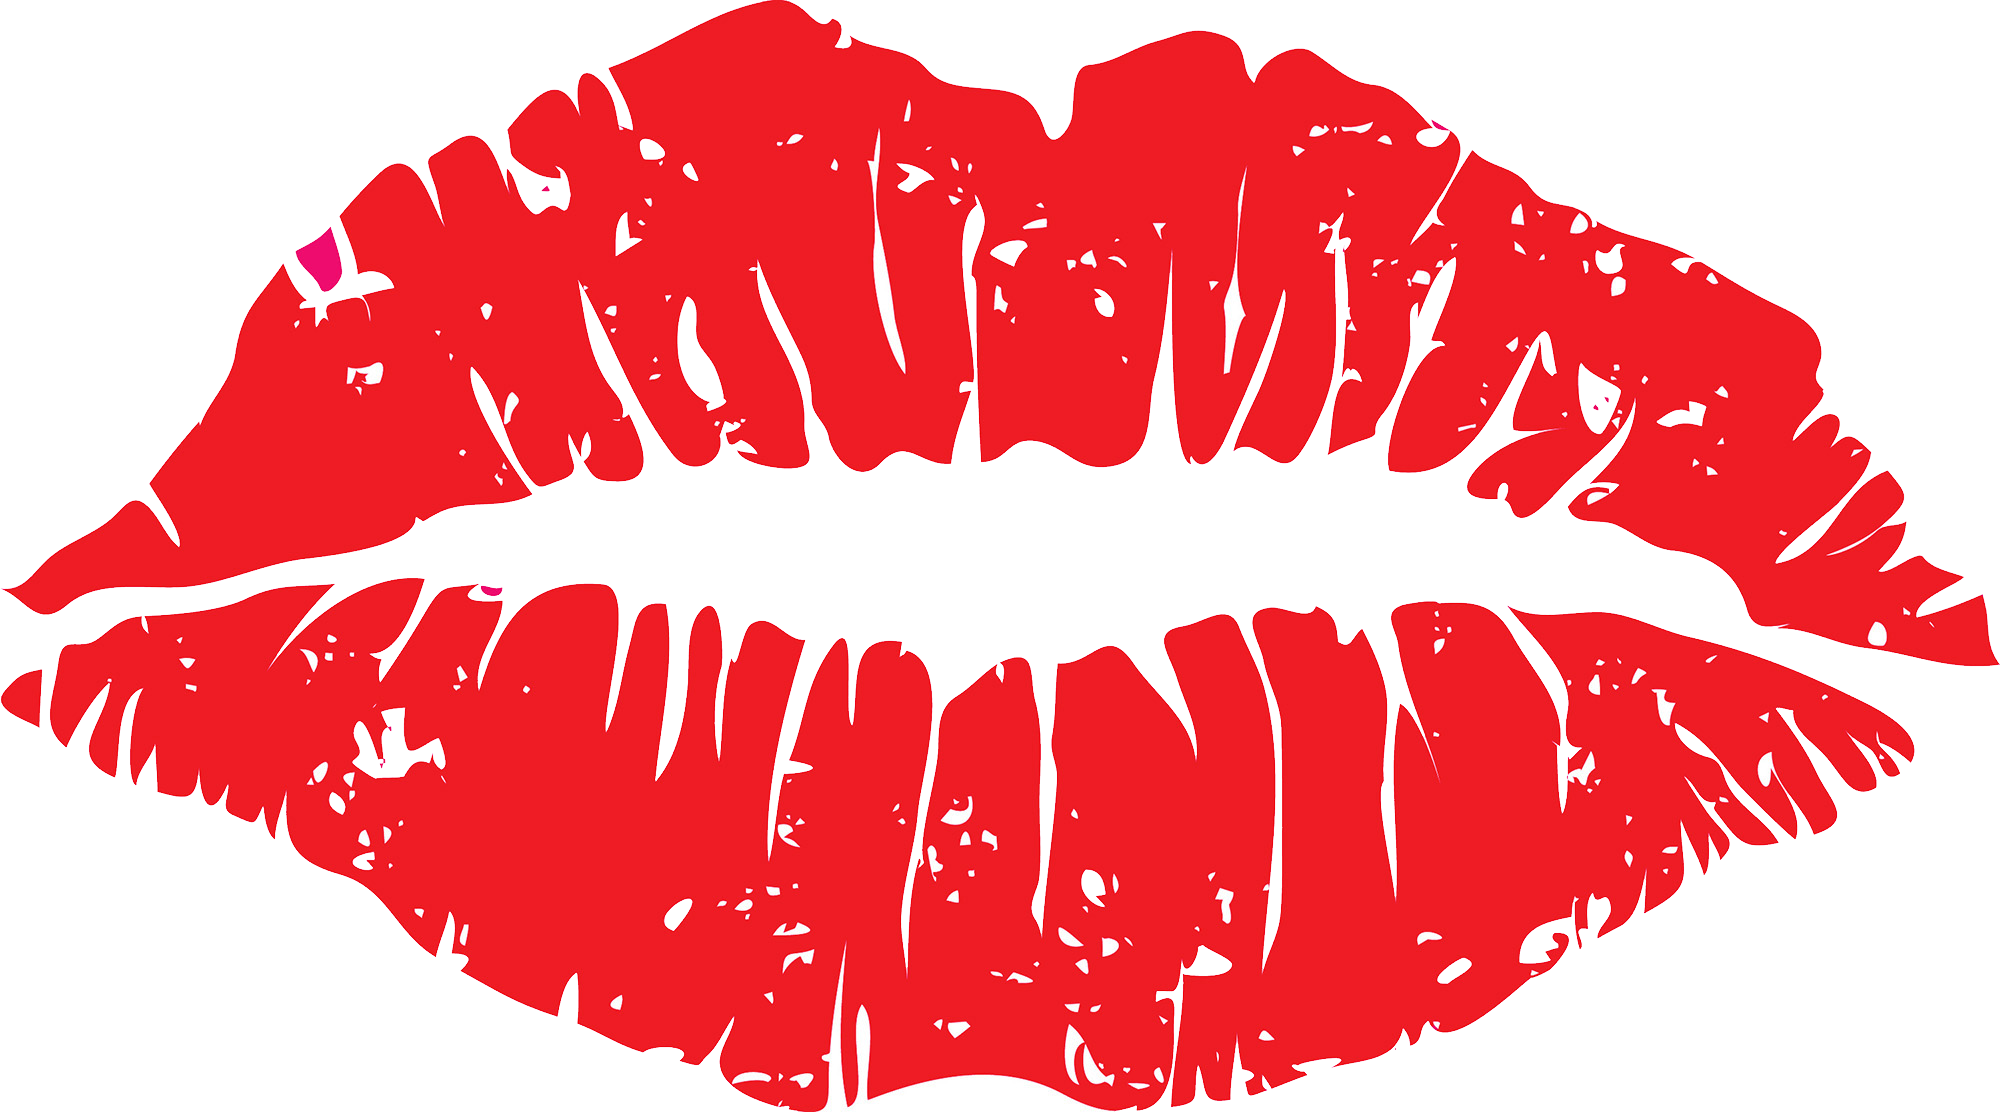 Kiss clipart png. Image